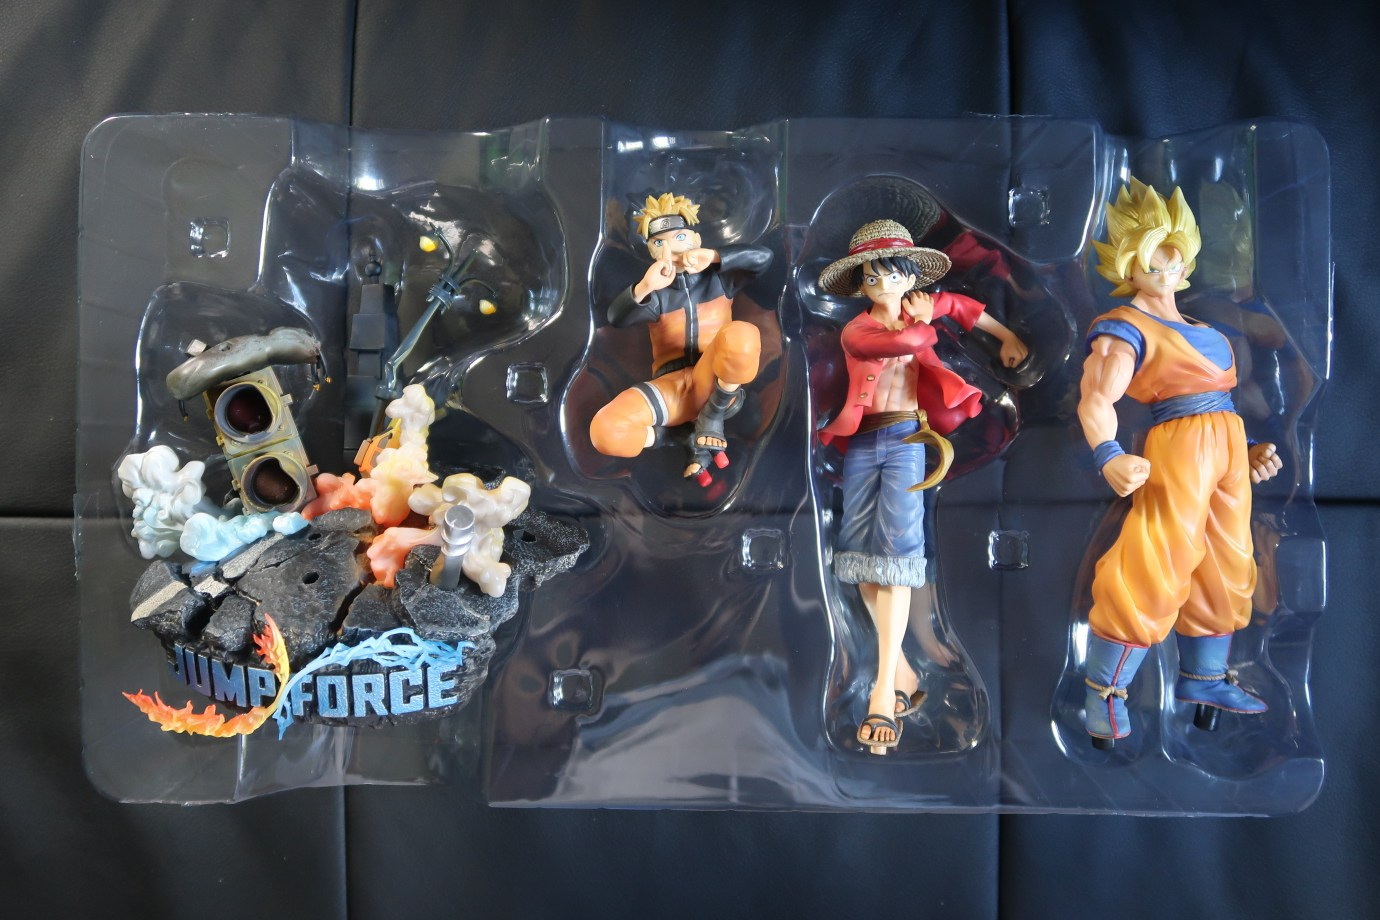 jump force collectors edition items